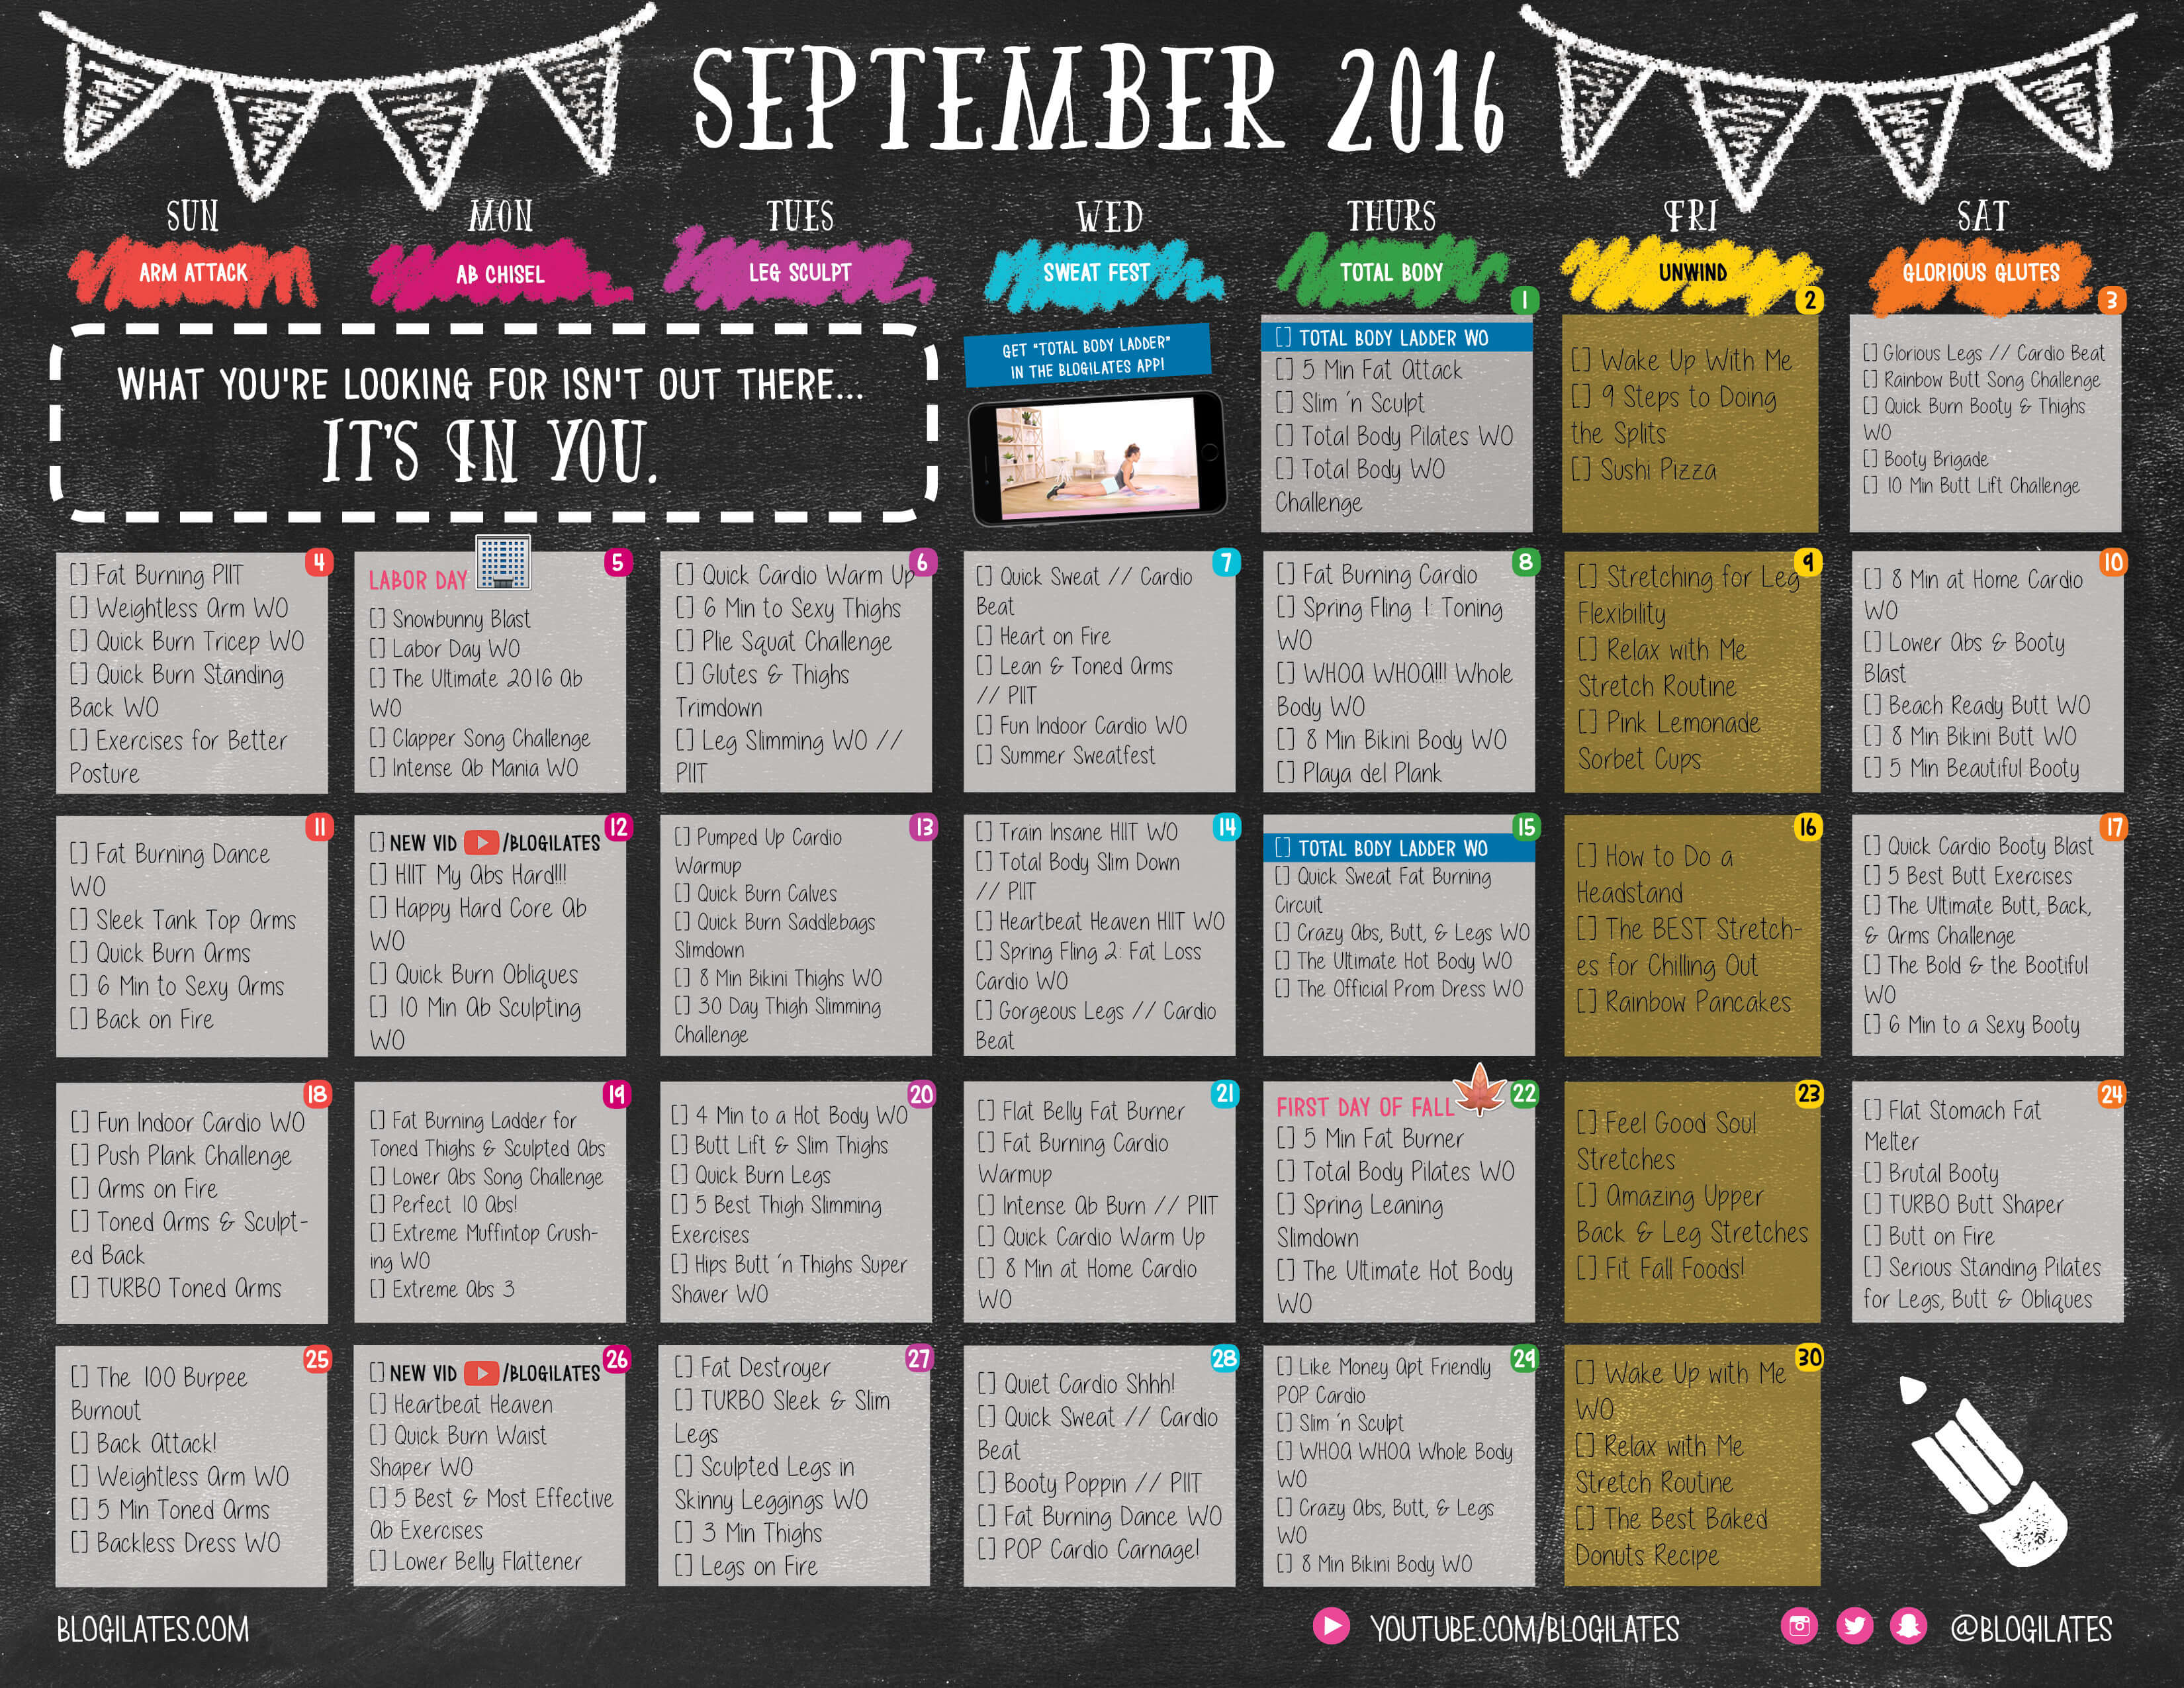 September 2016 Workout Calendar Blogilates Fitness Food And